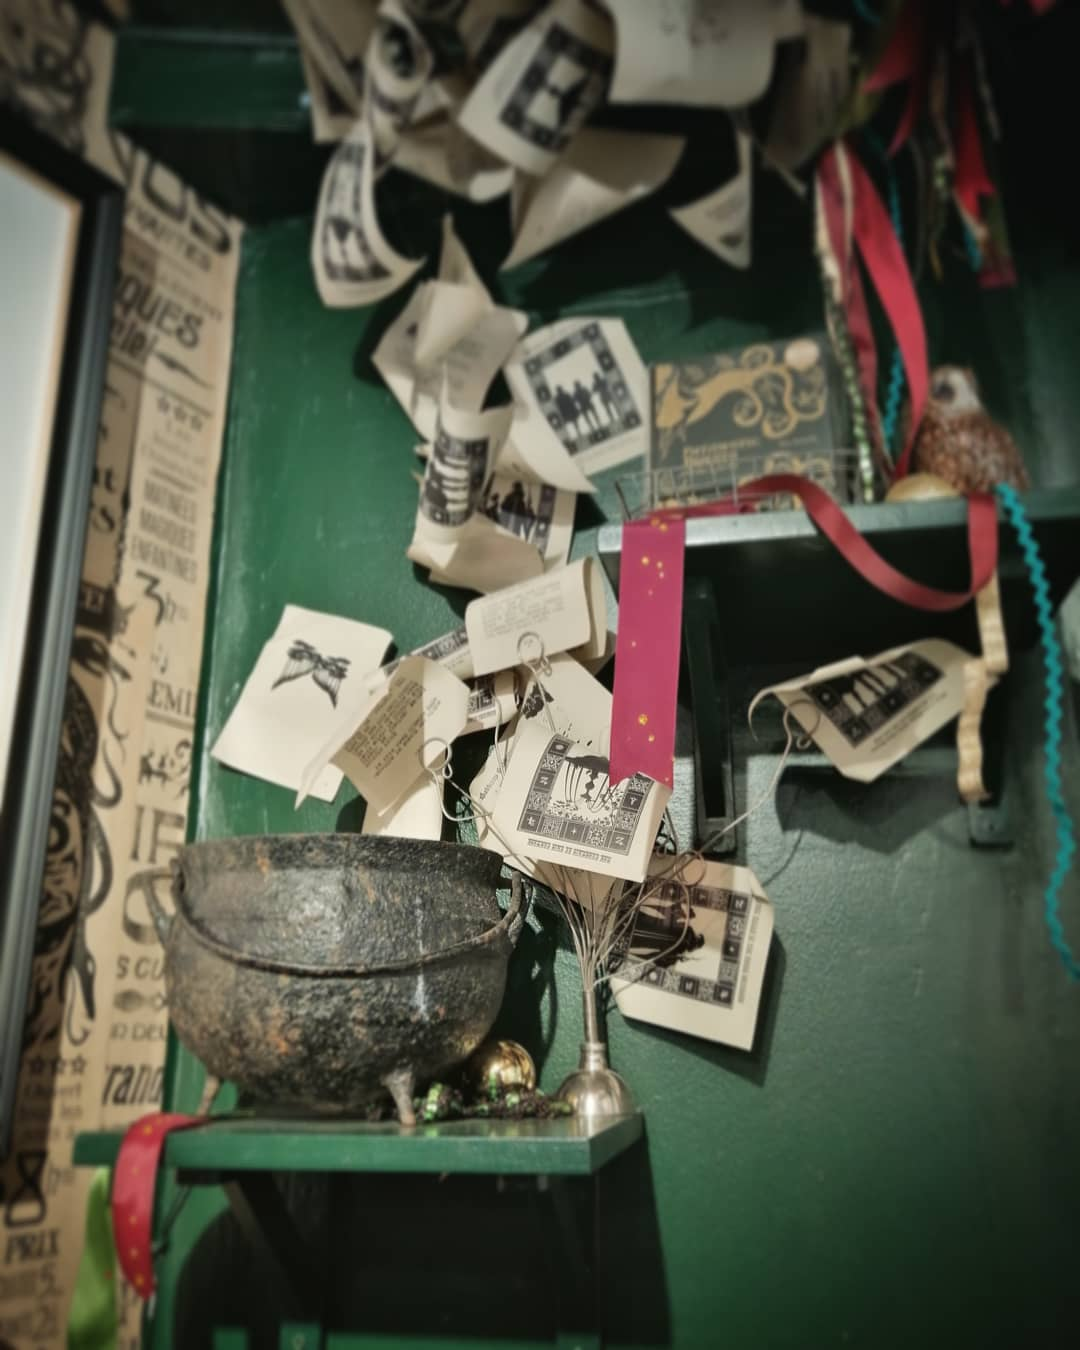 Check out this fun cauldron display in House of MinaLima.